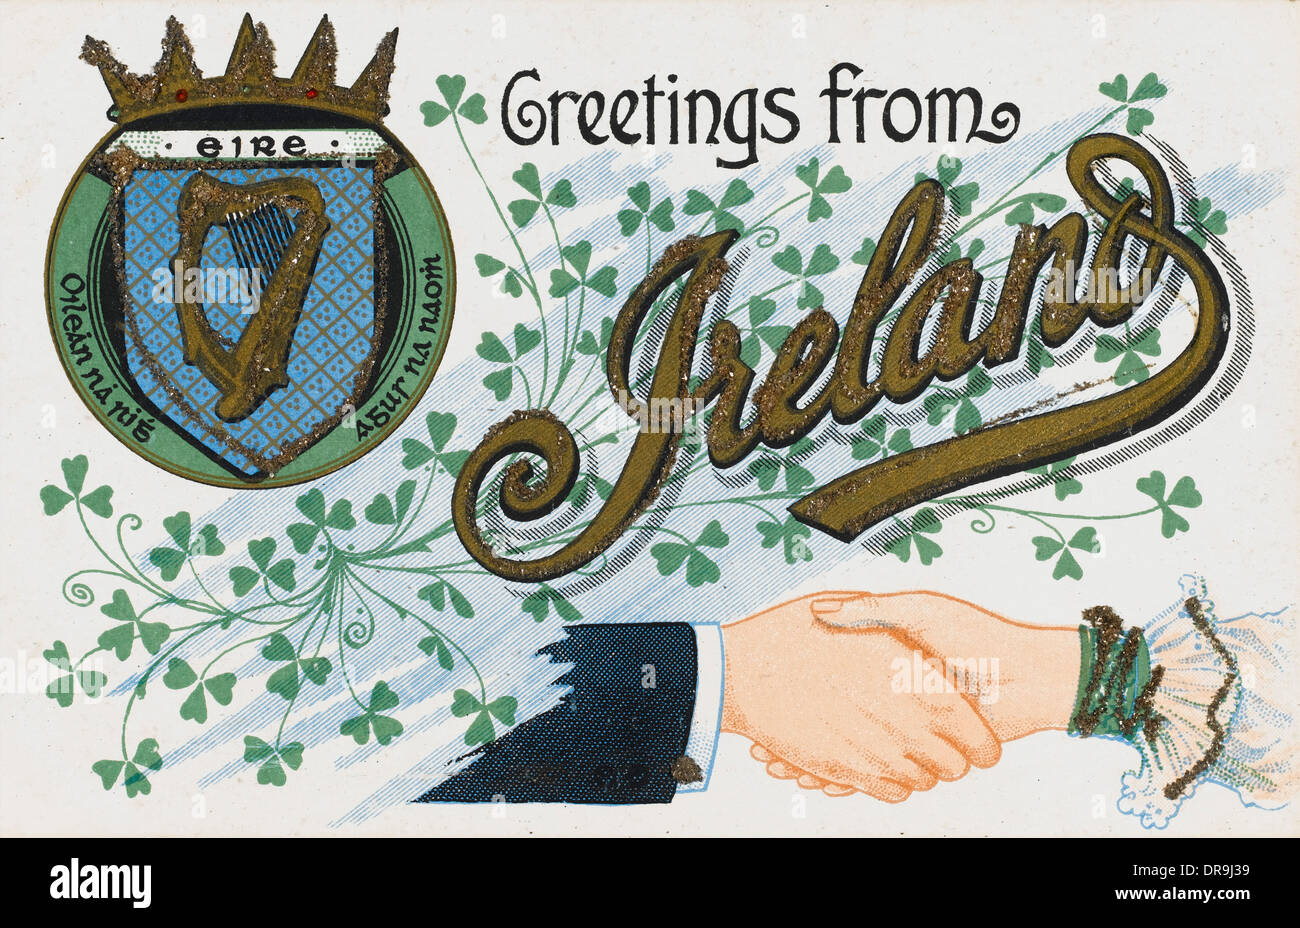 Greeting From Ireland Postcard Stock Photo 65979965 Alamy